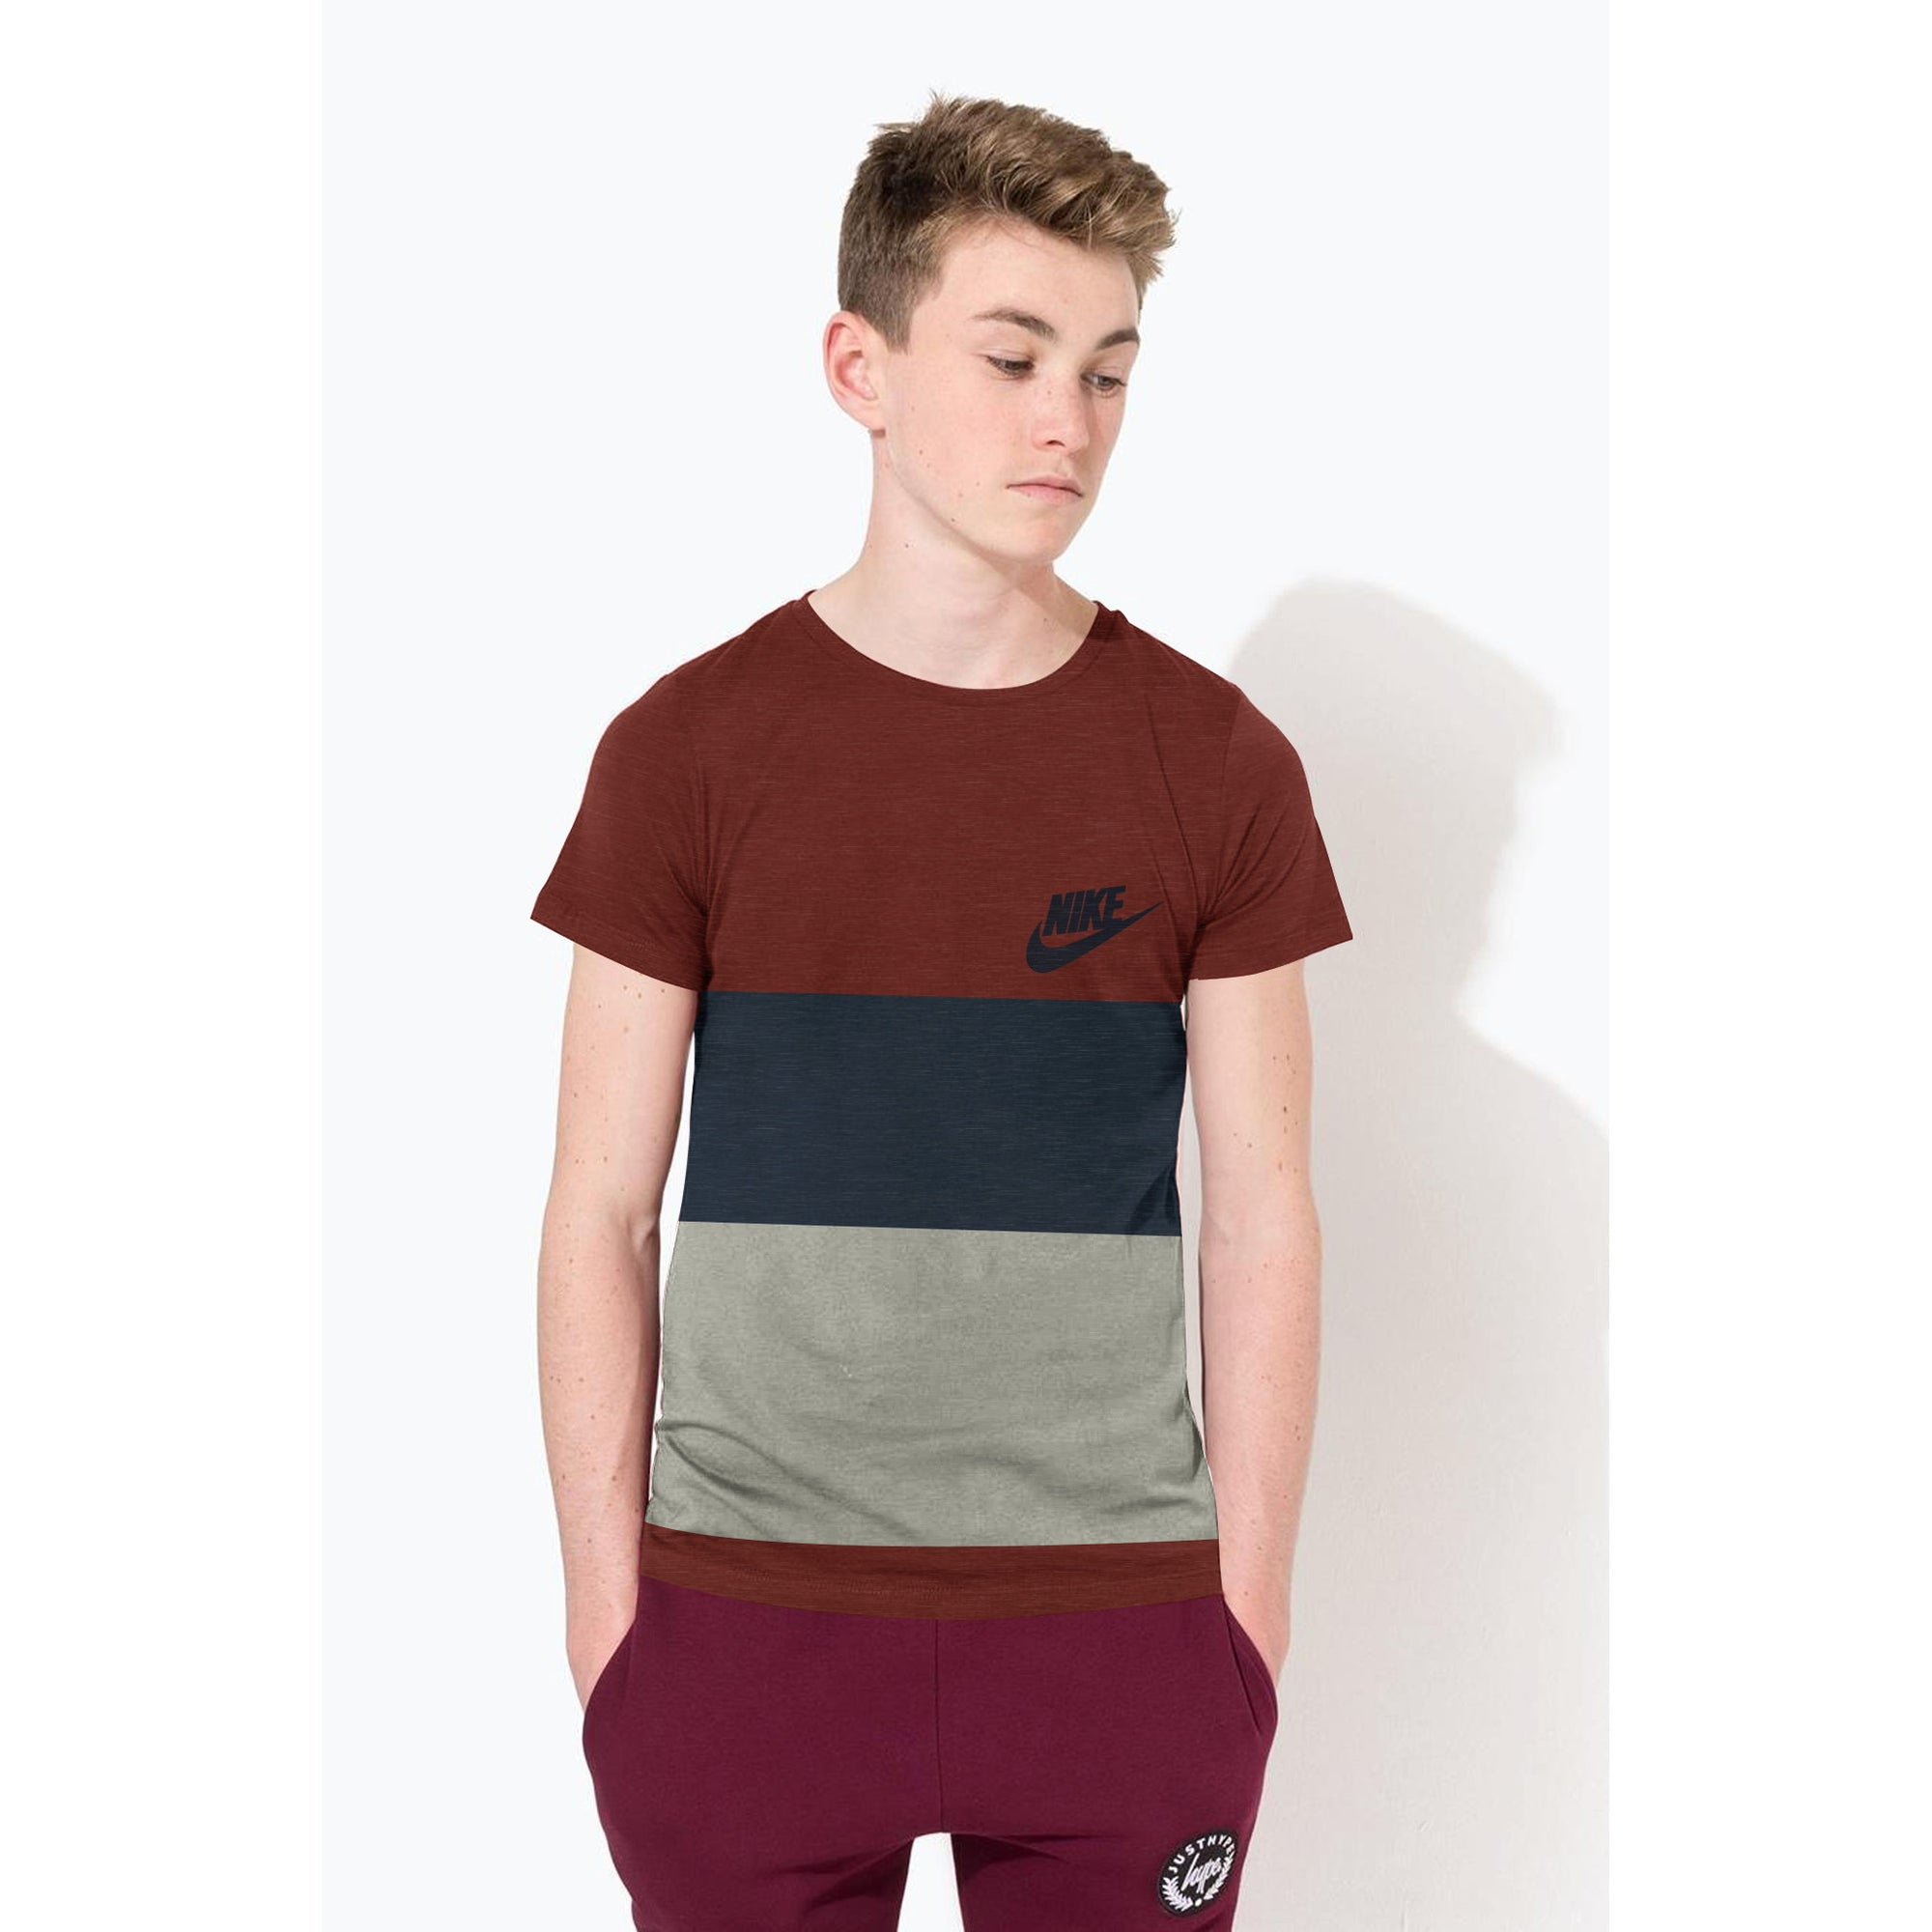 NK Crew Neck Single Jersey Short Sleeve Tee Shirt For Boys-Maroon Melange with Dark Navy & Grey Panels-SP1961